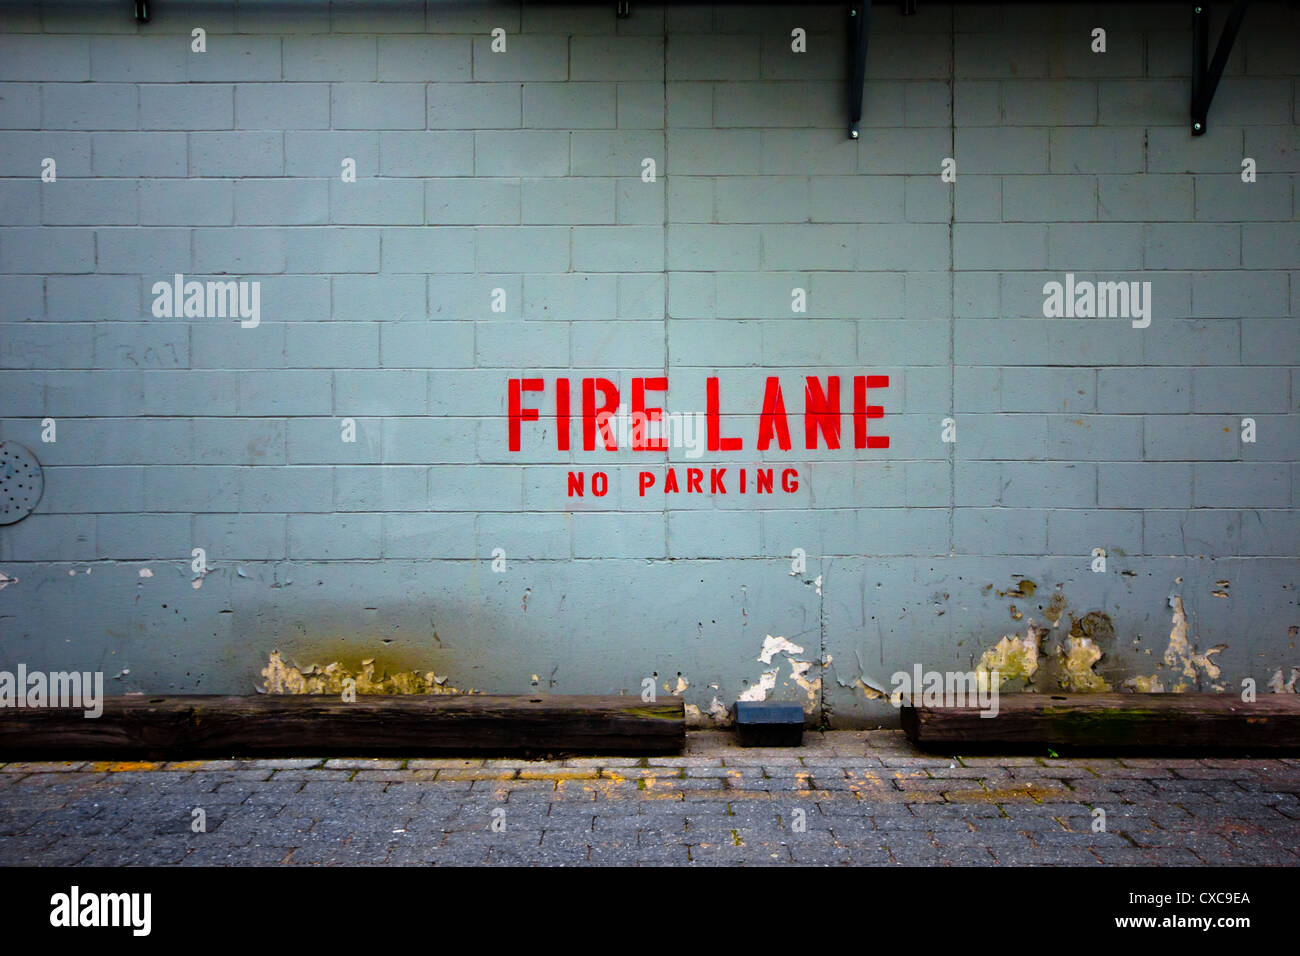 Grungy brick wall with bright red words indicating Fire Lane No Parking.  Good for backdrop - Stock Image